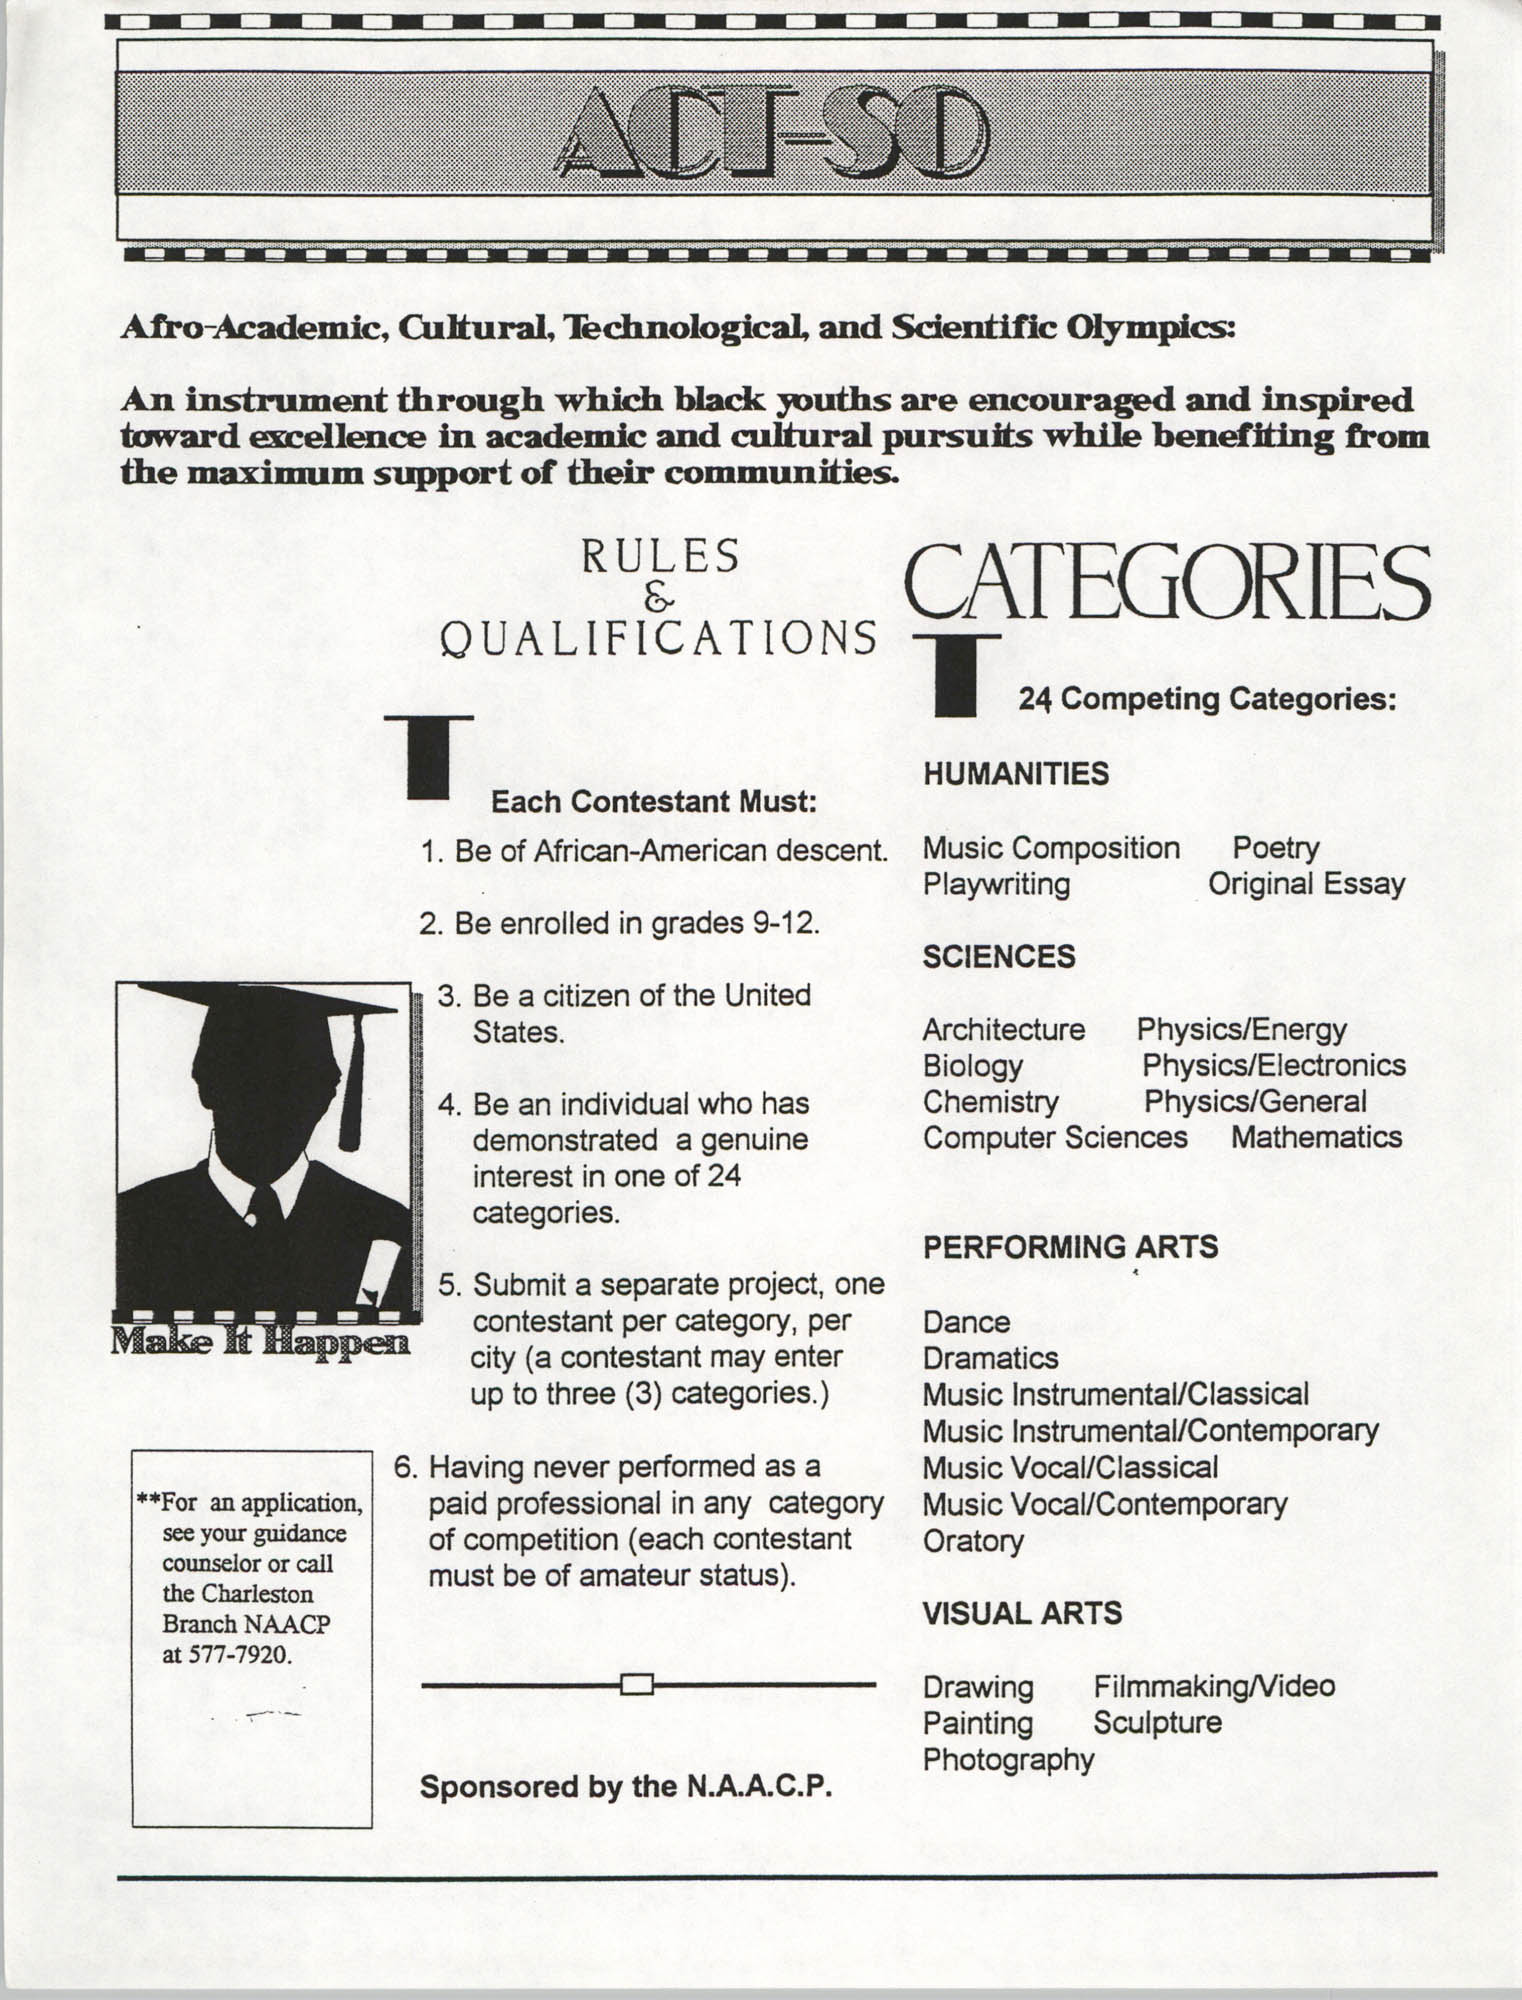 Flyer, ACT-SO Program, NAACP